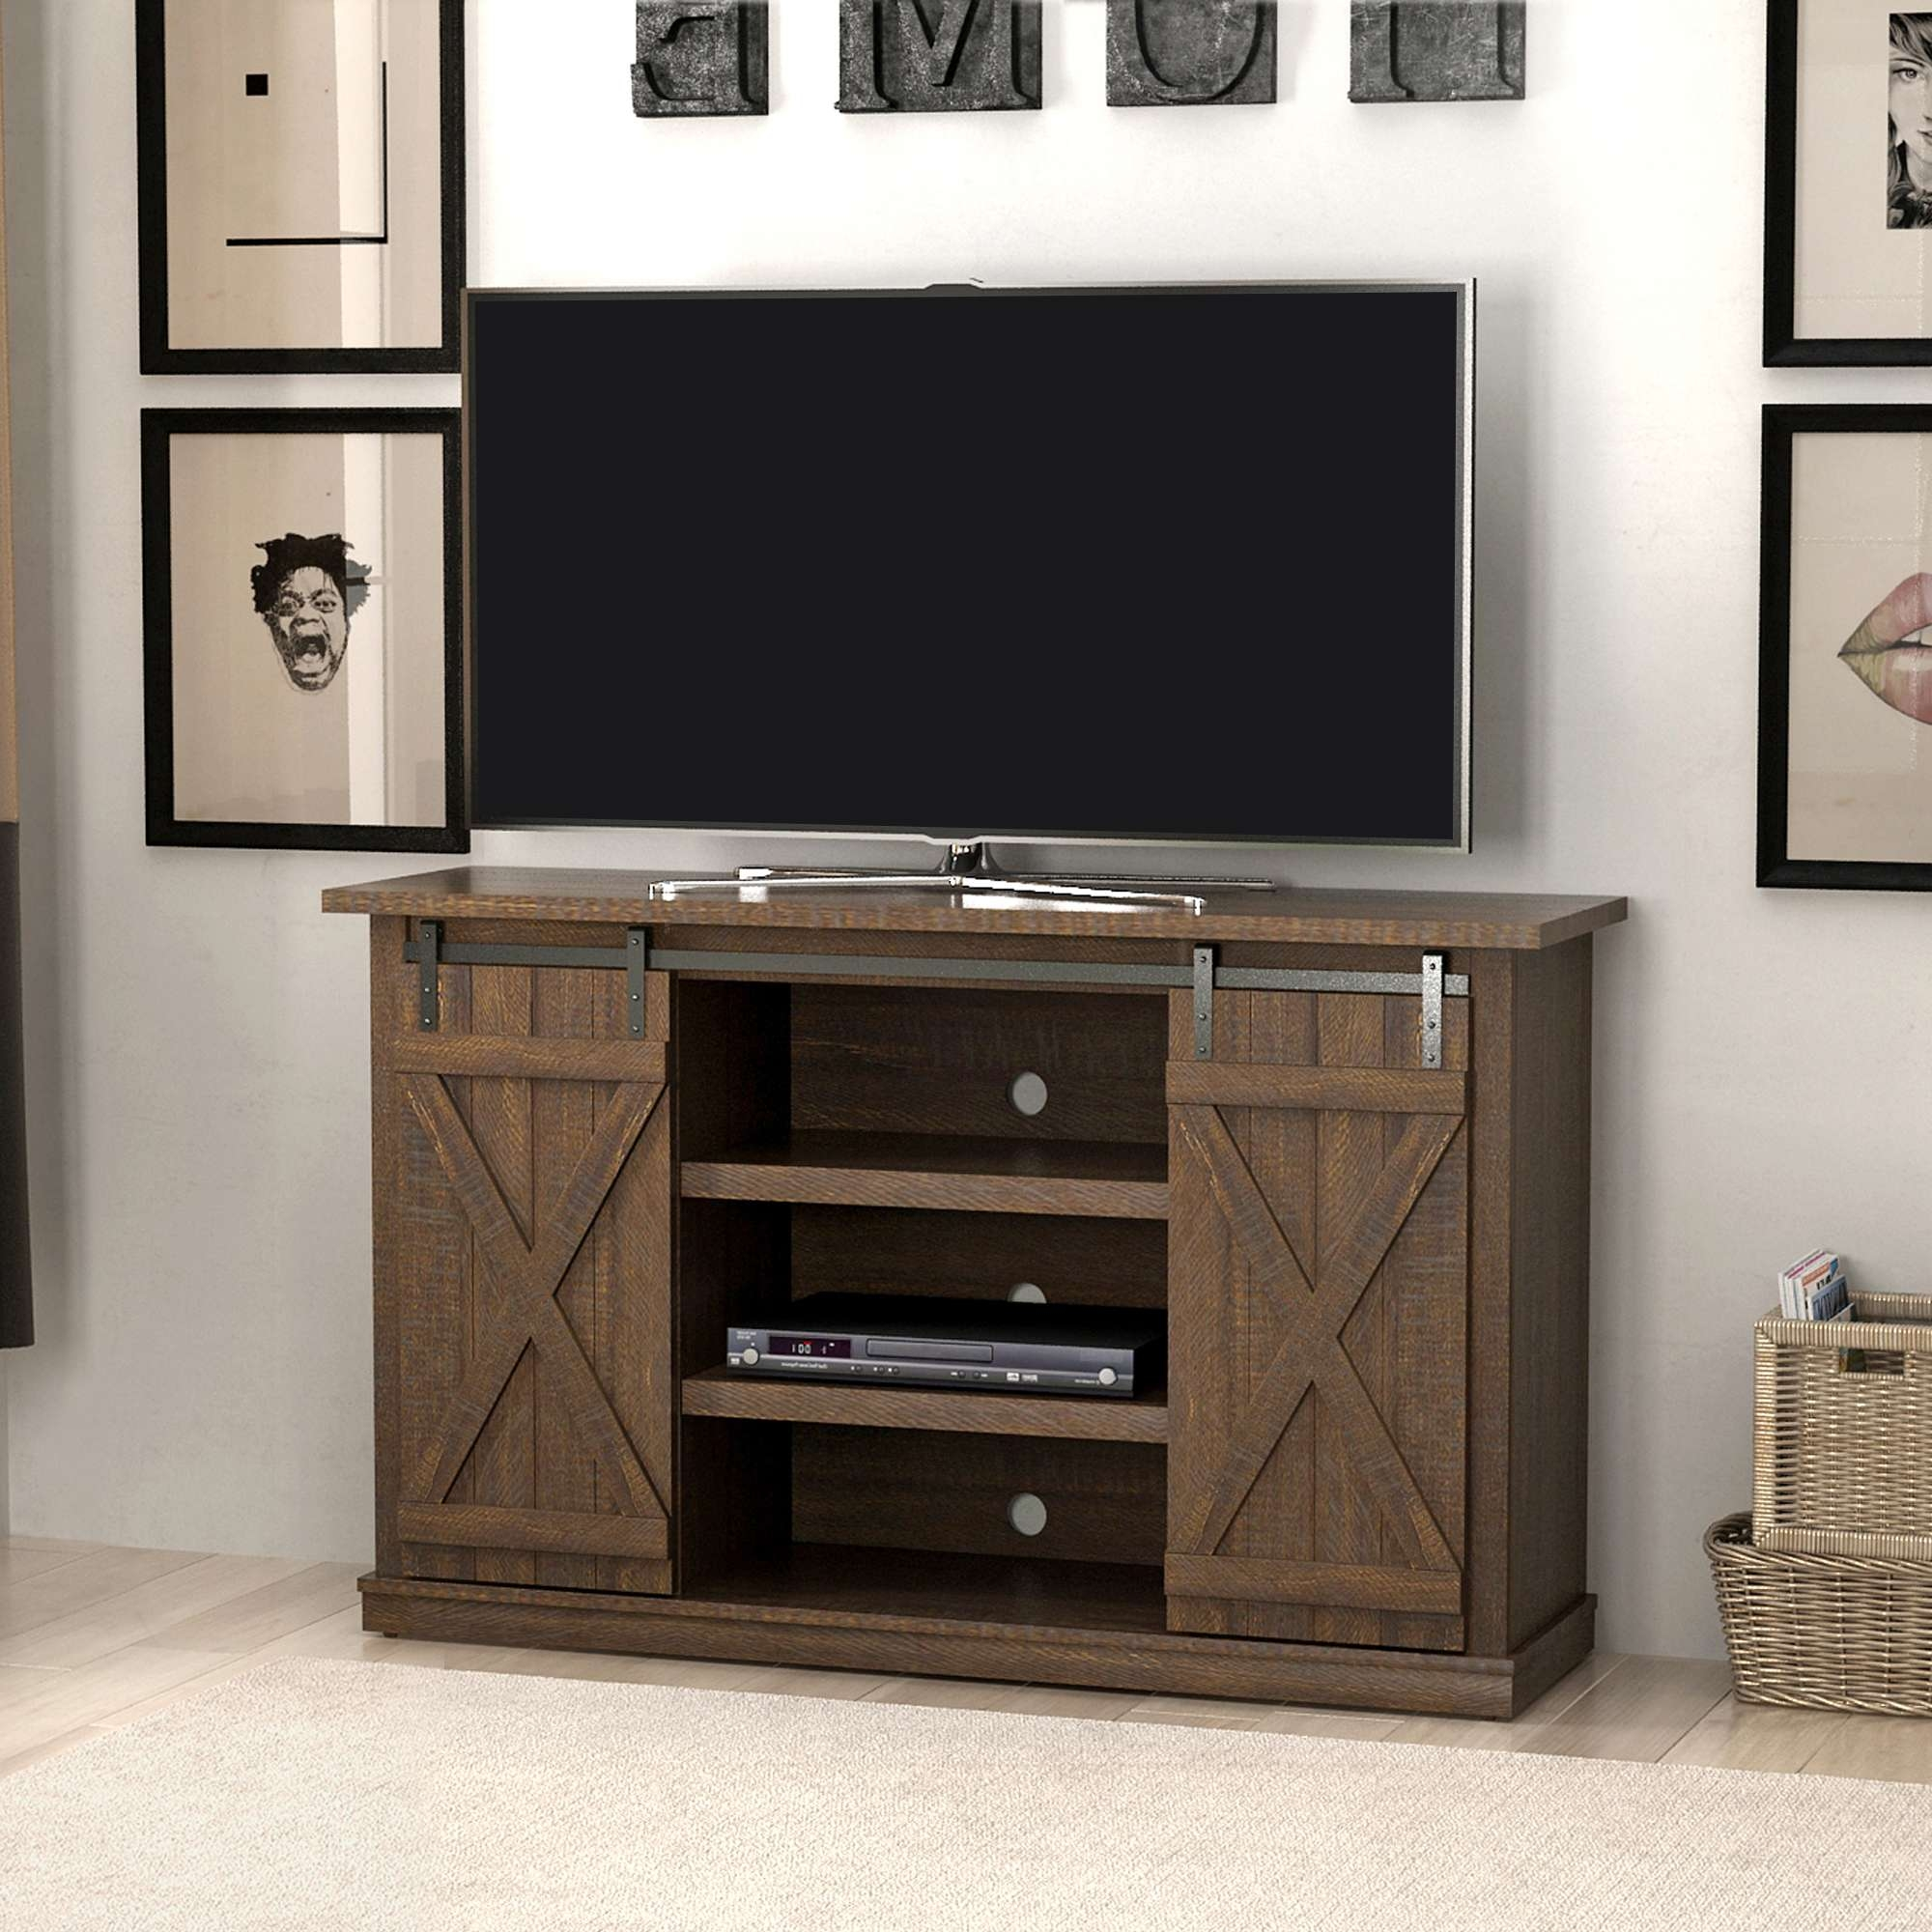 Tv Stands – Walmart Intended For Oak Tv Stands For Flat Screens (View 7 of 15)